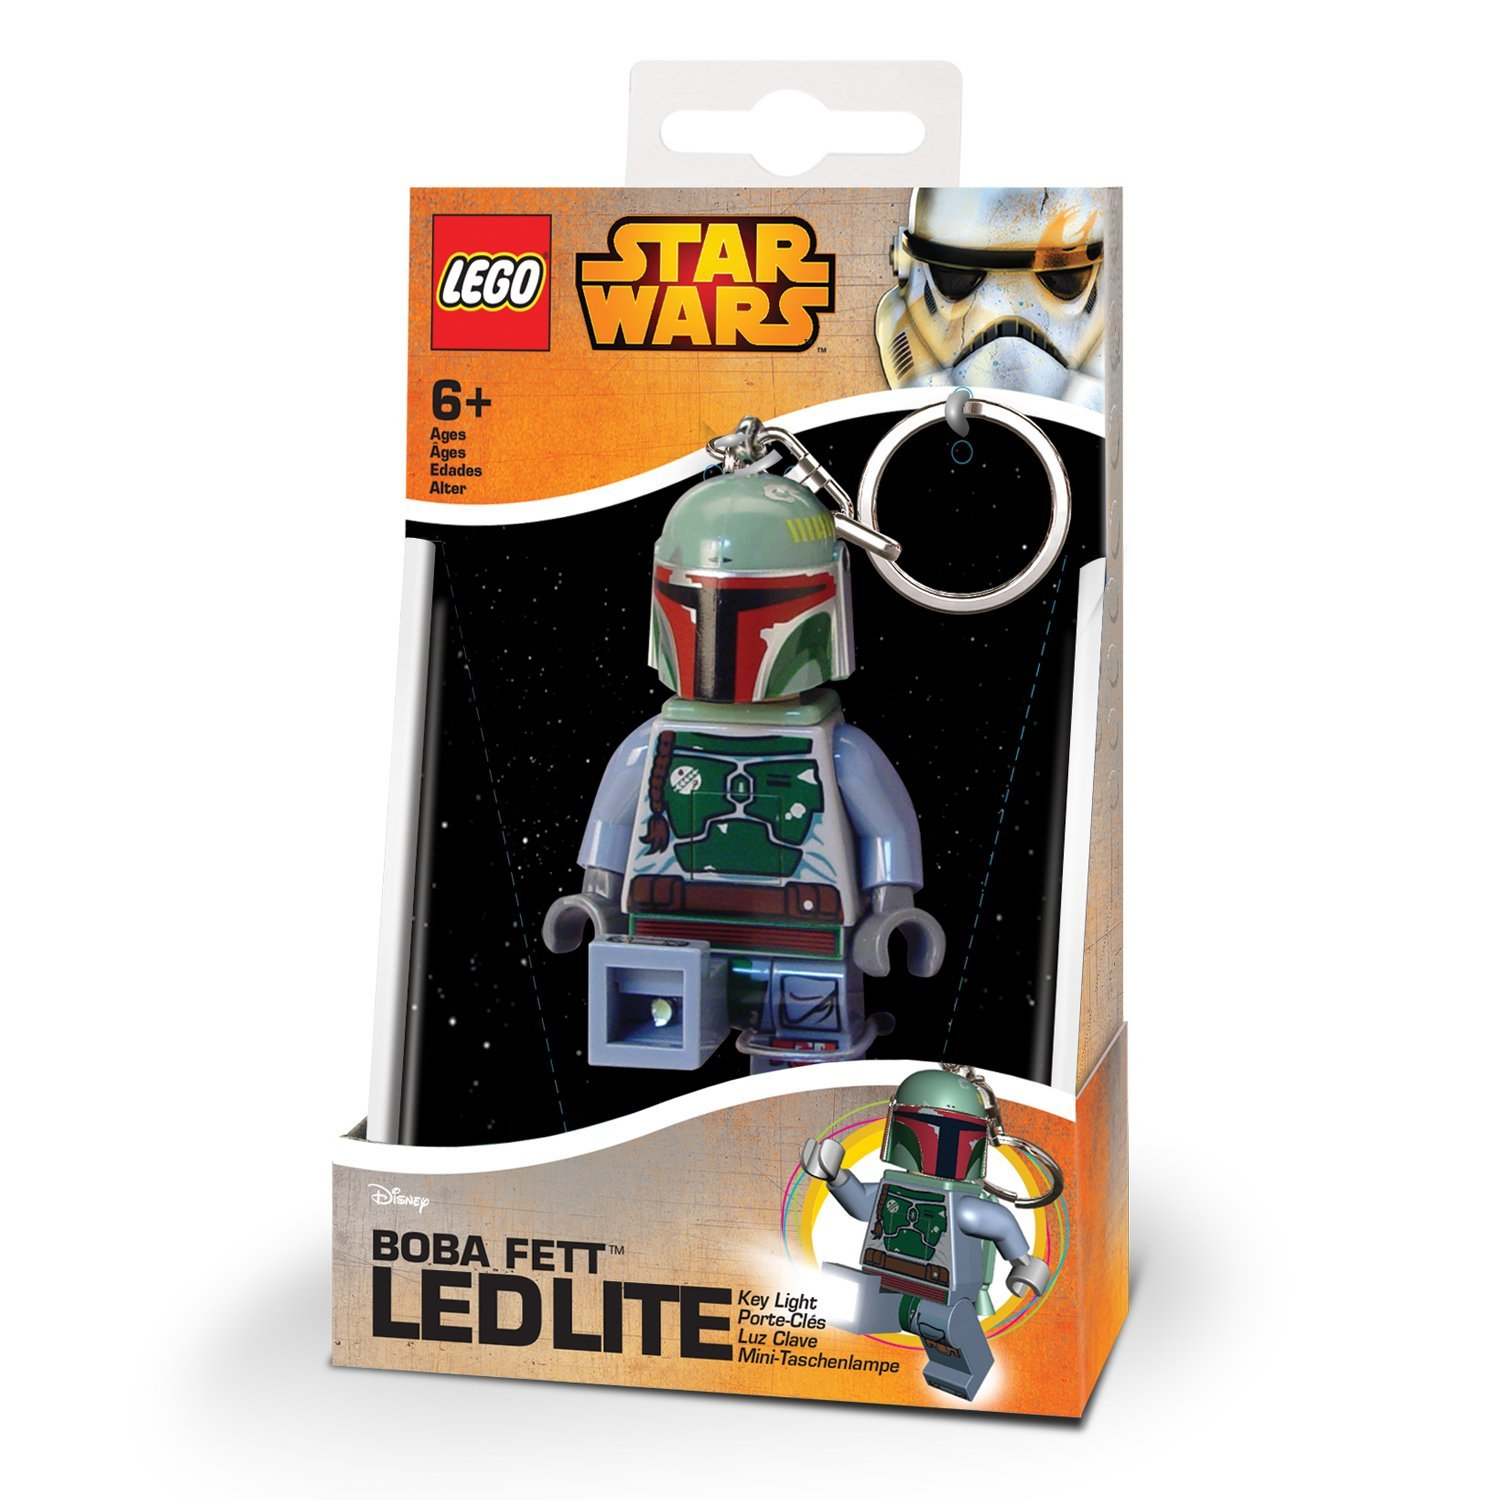 LEGO Star Wars Boba Fett Key Light